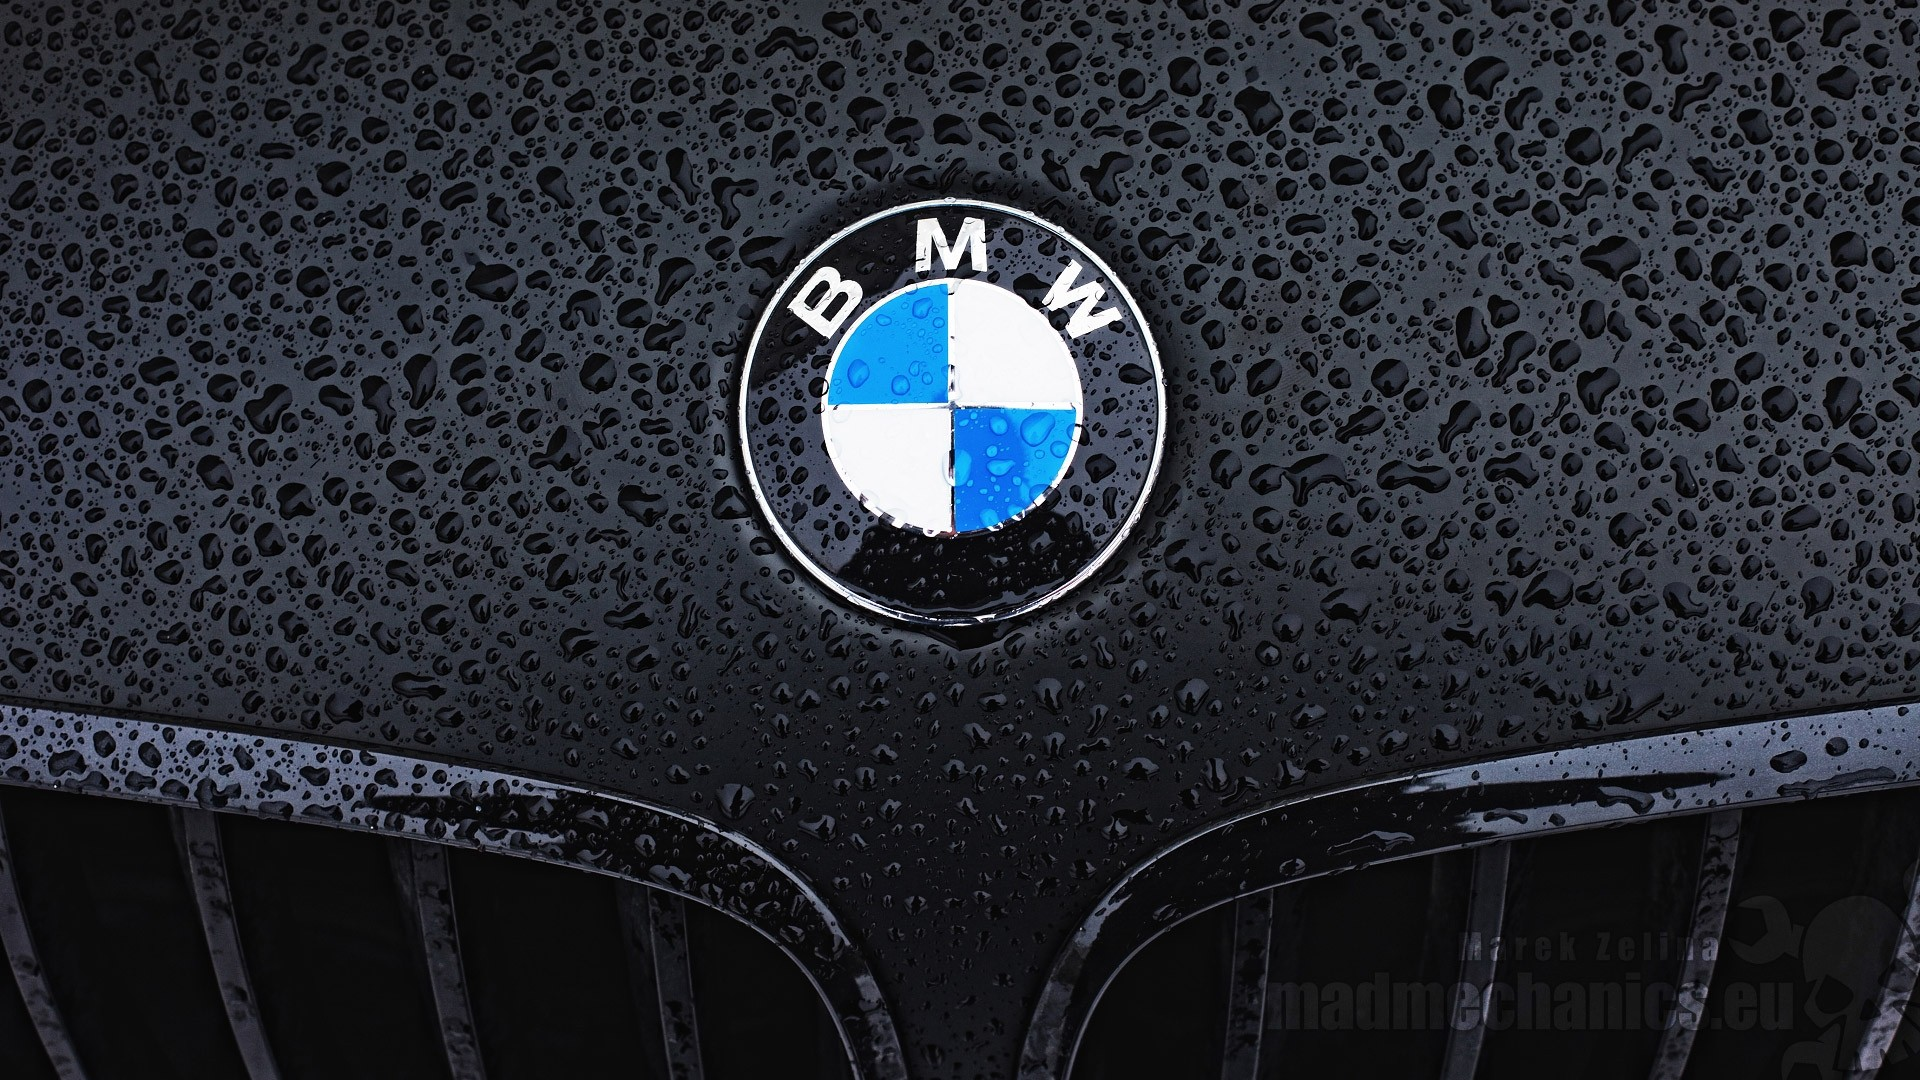 bmw logo wallpaper. Black Bedroom Furniture Sets. Home Design Ideas